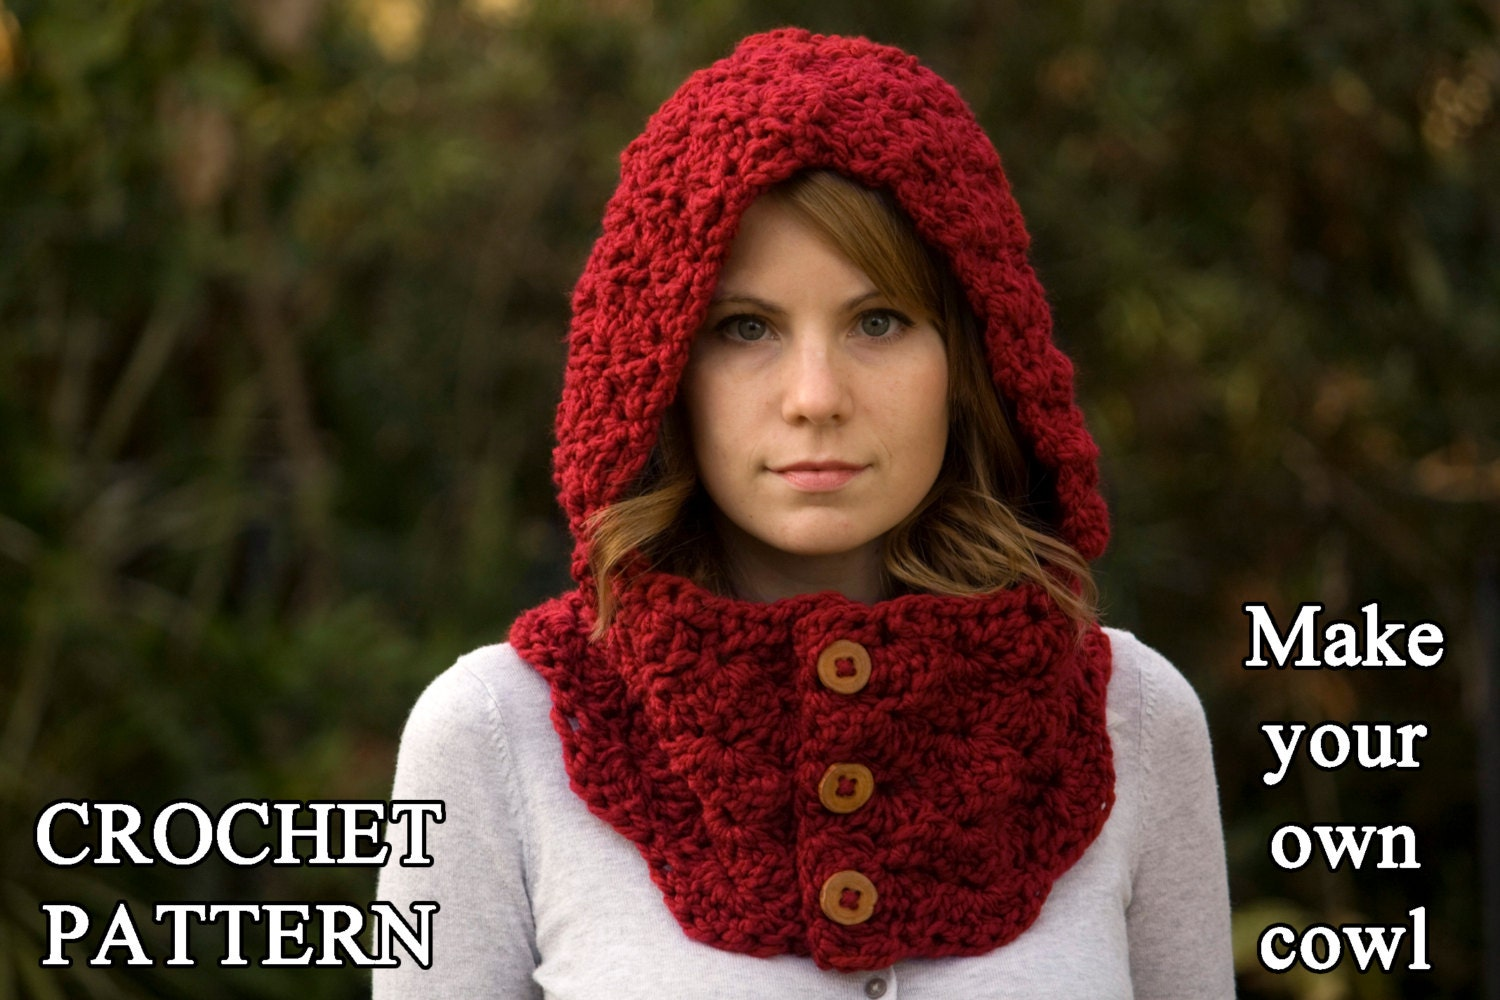 CROCHET PATTERN Hooded Cowl Button Neck Warmer Crochet